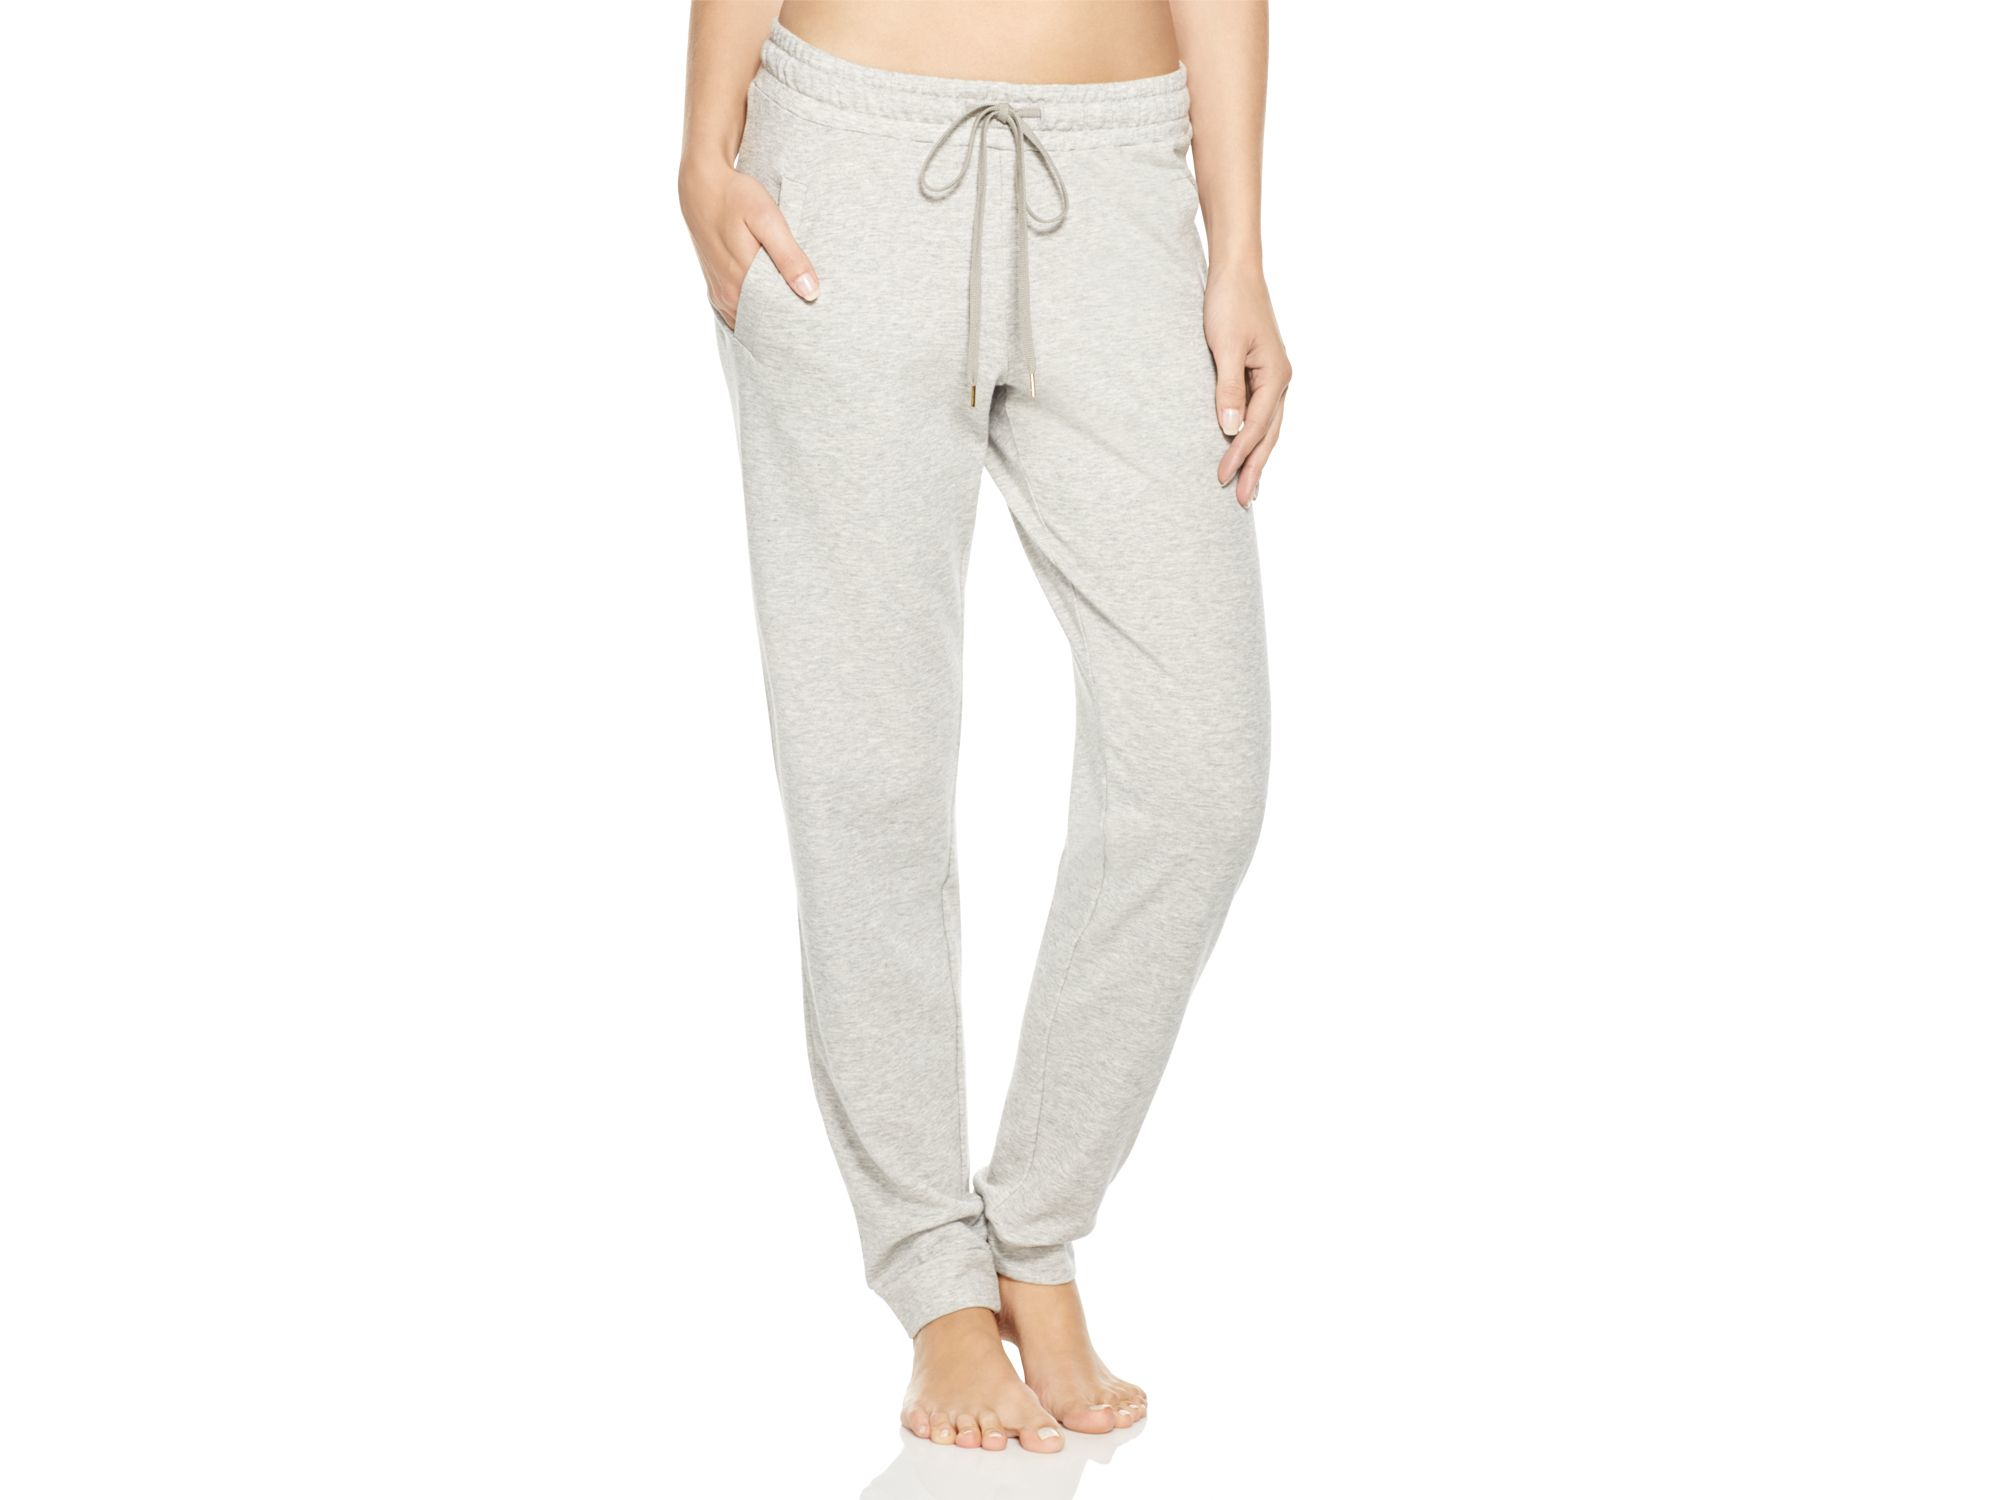 d21d754bb591a Hanro Yoga Fashion Lounge Pants in Gray - Lyst